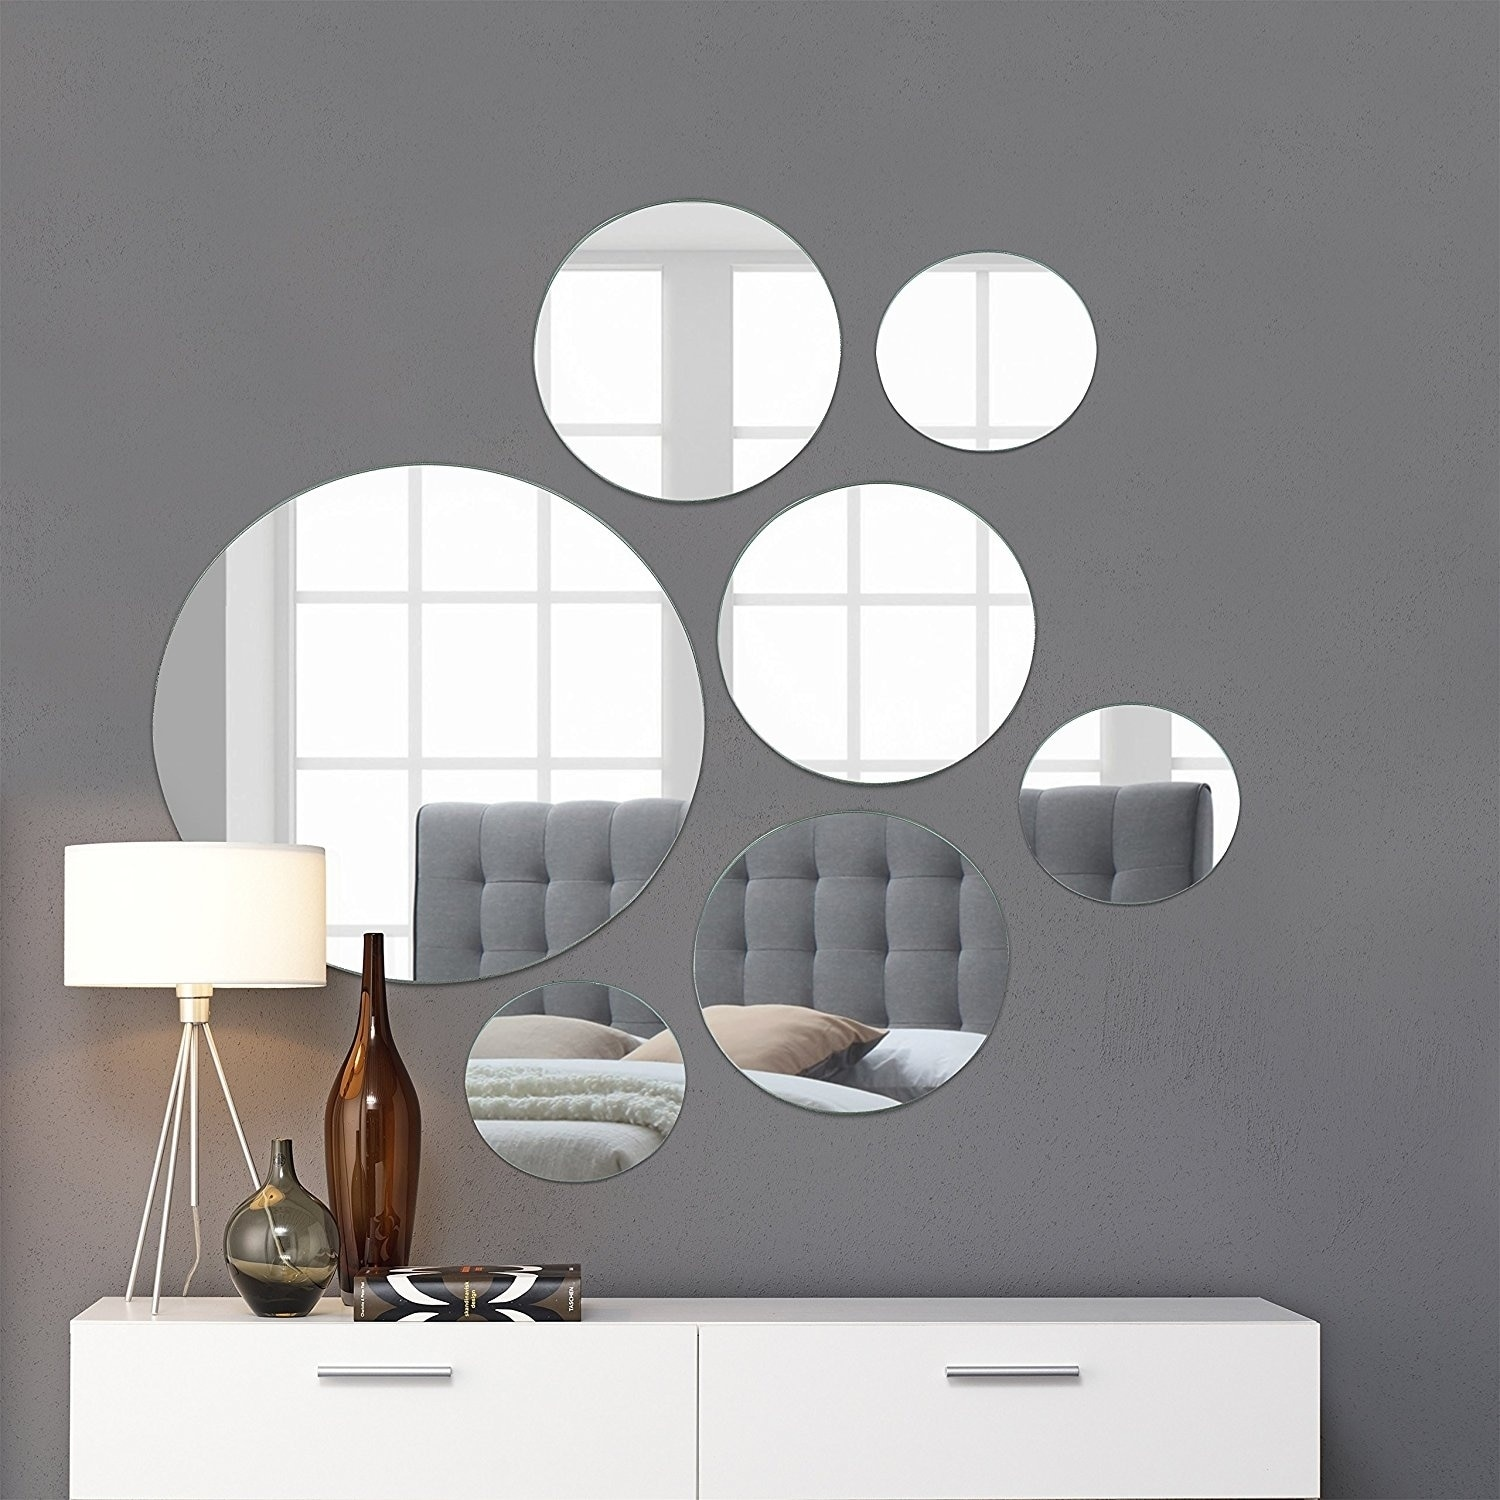 Large Wall Mirrors Round Wall Mirror Mounted Assorted Sizes Silver 1 Large 10